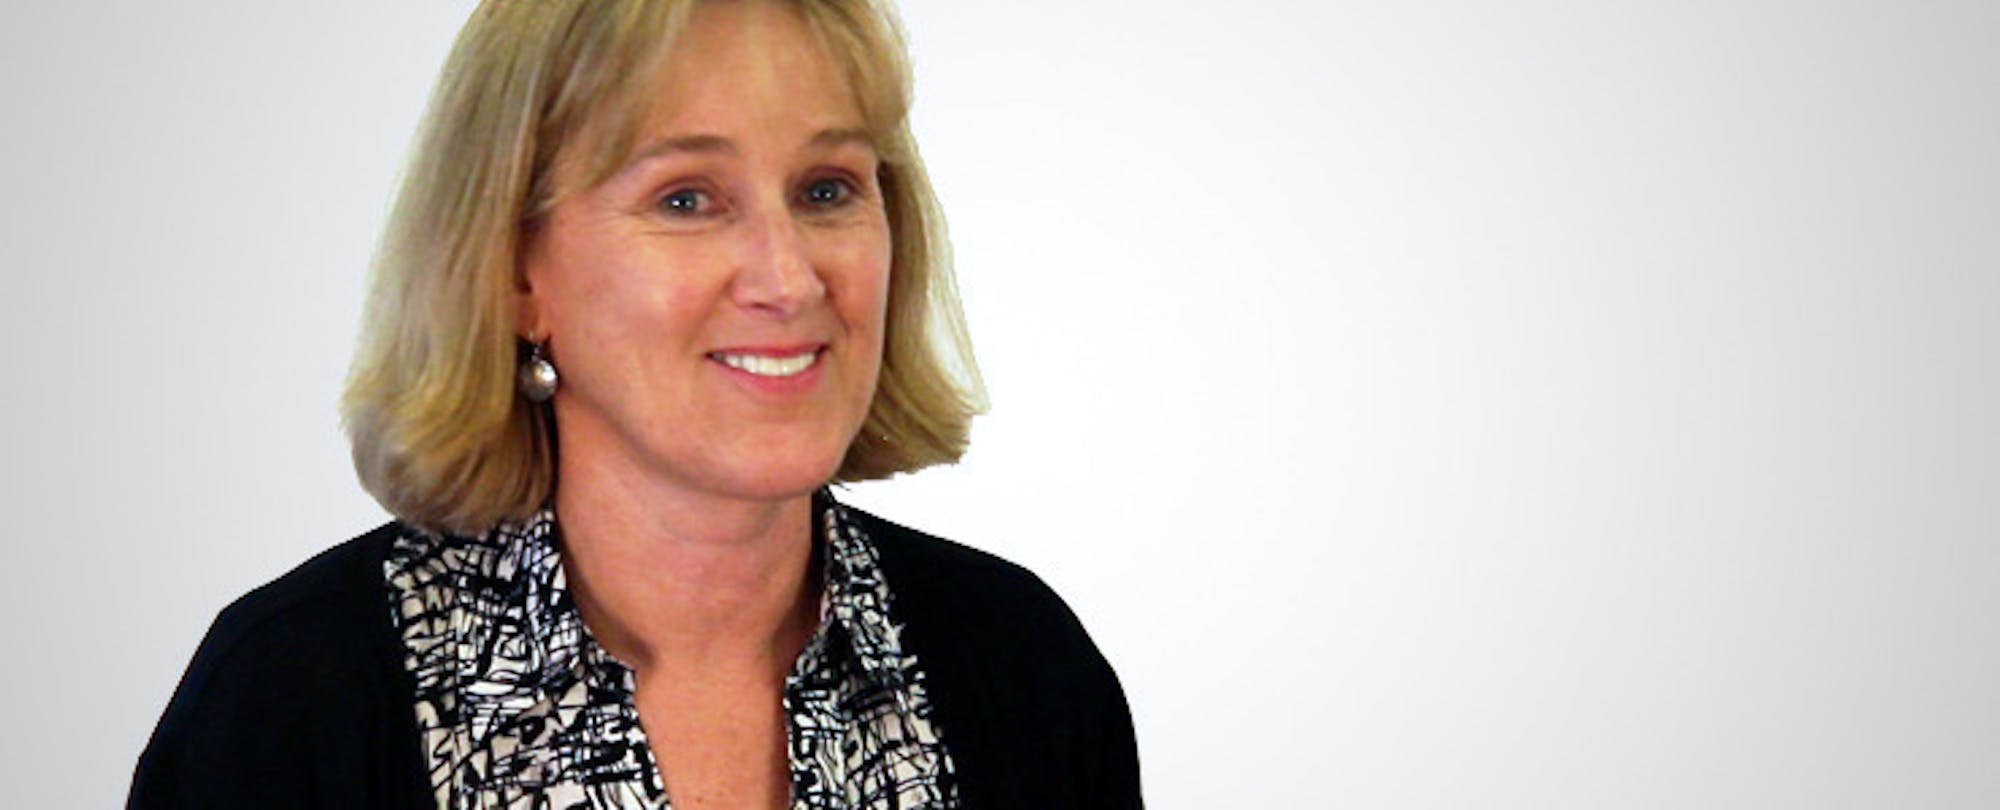 Karen Cator on Department of Education's Next Course